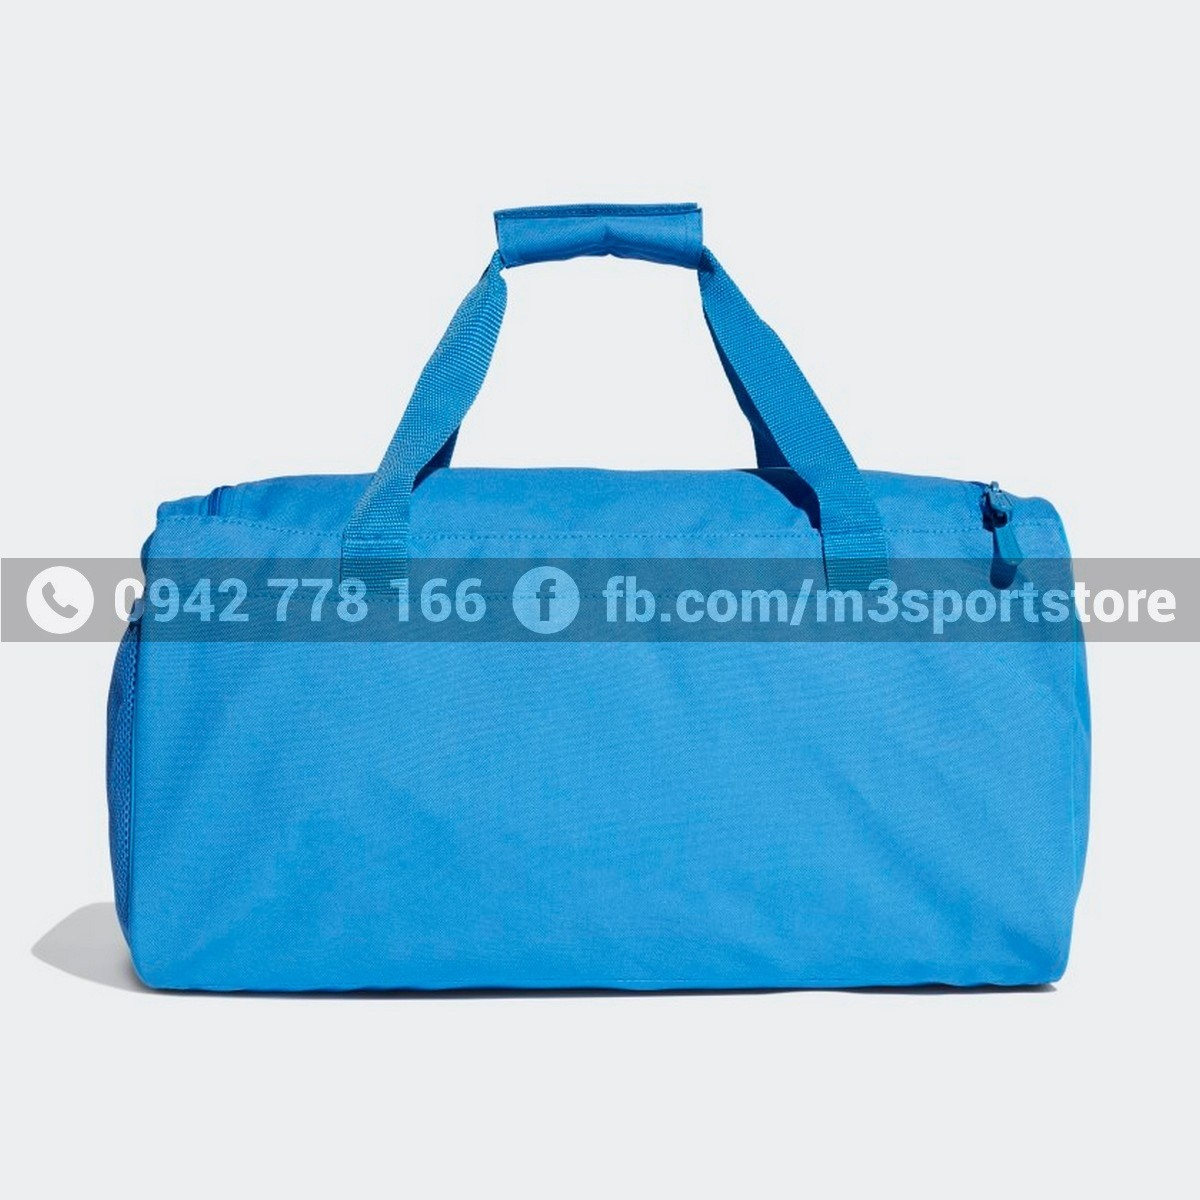 Túi thể thao Adidas Linear Core Duffel Small DT8623